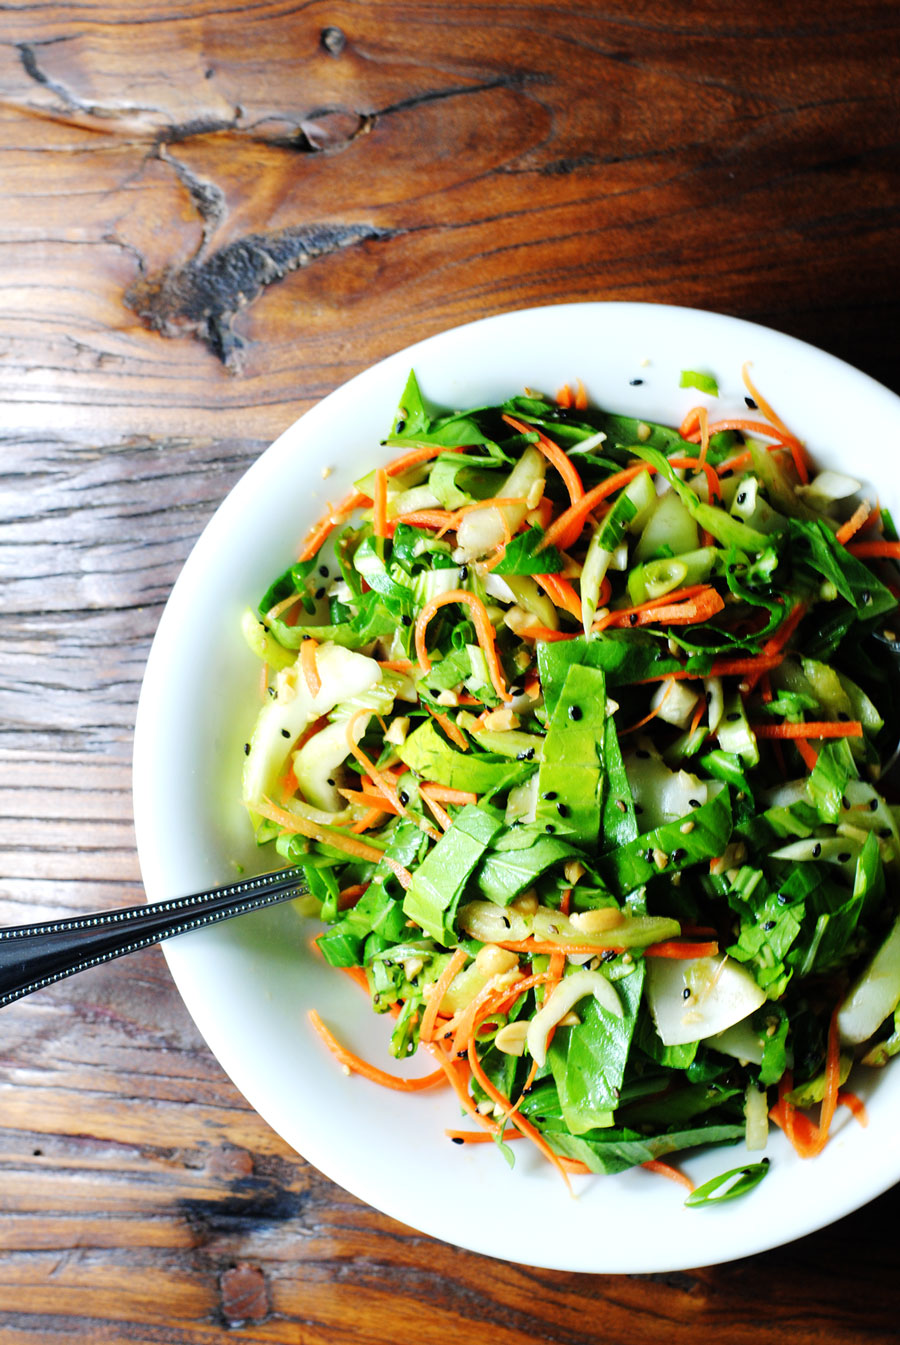 Bok Choy Salad With Garlic Sesame Dressing White Plate Blank Slate